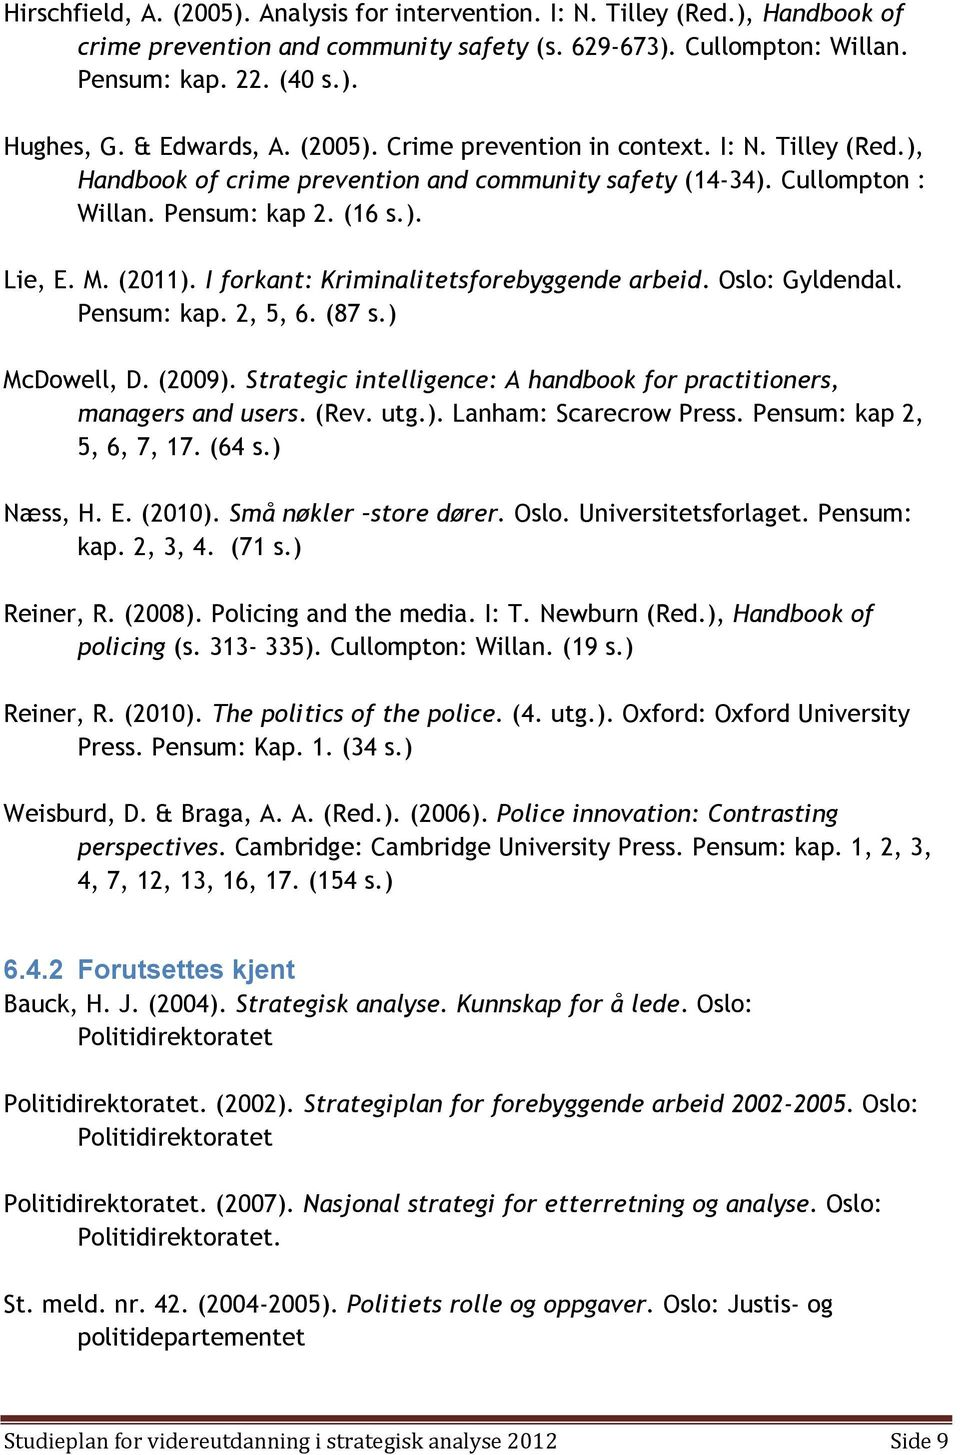 I forkant: Kriminalitetsforebyggende arbeid. Oslo: Gyldendal. Pensum: kap. 2, 5, 6. (87 s.) McDowell, D. (2009). Strategic intelligence: A handbook for practitioners, managers and users. (Rev. utg.). Lanham: Scarecrow Press.